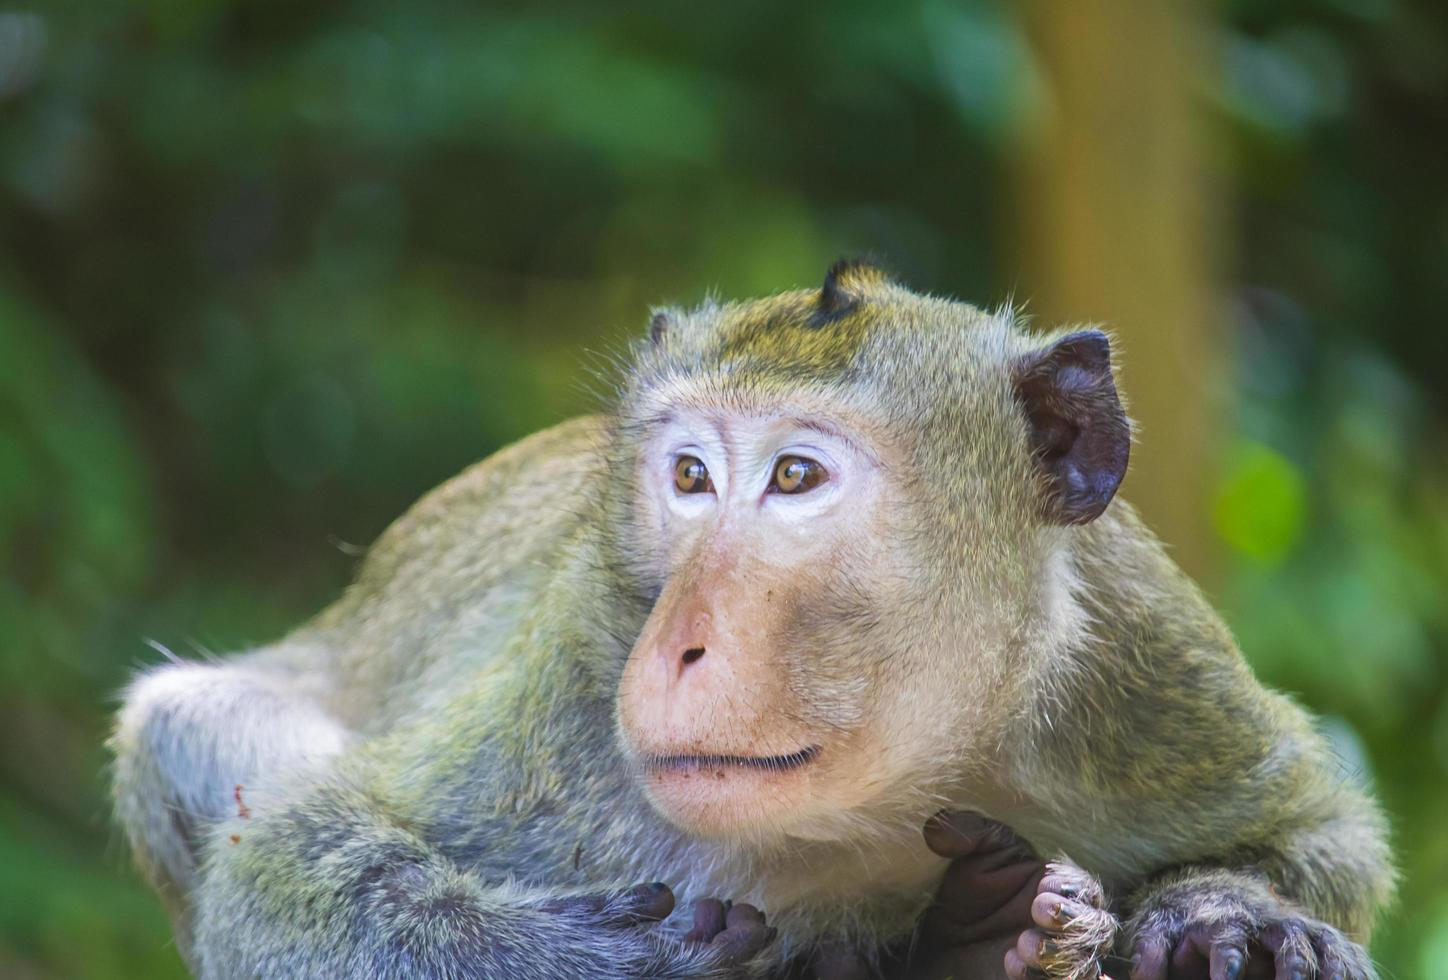 Macaque monkey in forest photo